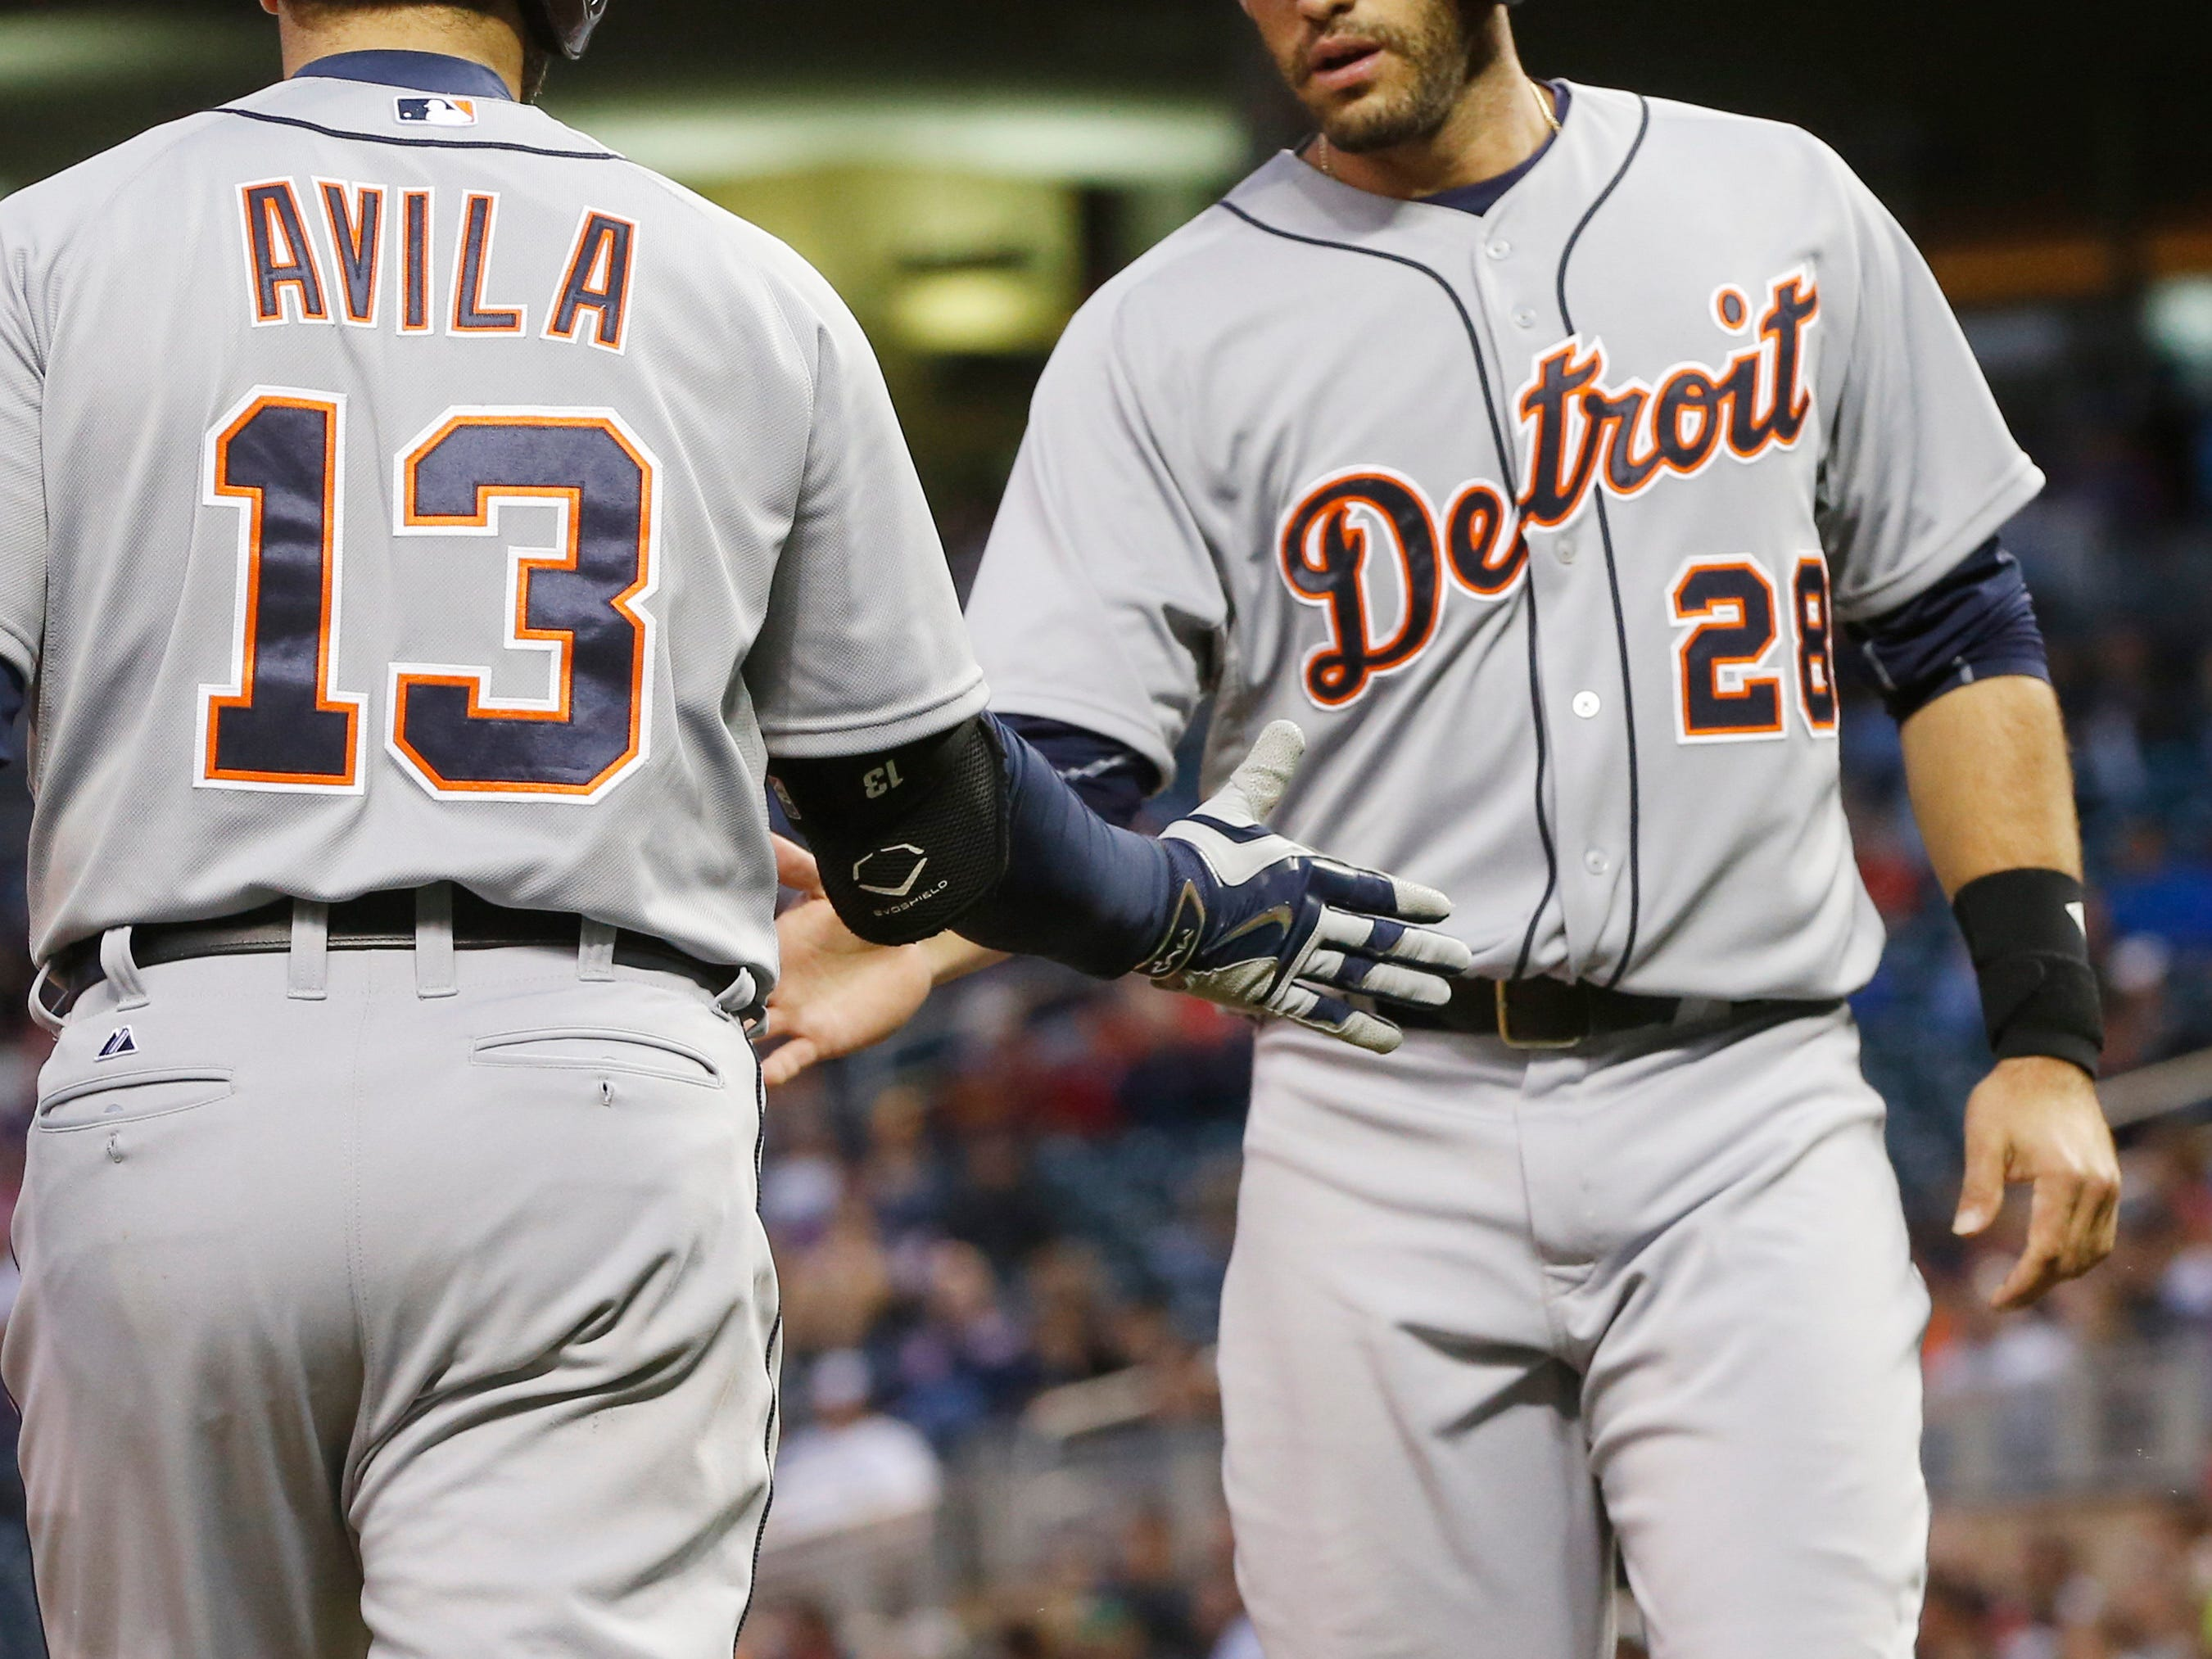 Detroit Tigers' J.D. Martinez, right, is congratulated by Alex Avila as he scores on a double by Yoennis Cespedes in the fourth inning of a baseball game off Minnesota Twins pitcher Mike Pelfrey, Tuesday, April 28, 2015, in Minneapolis. (AP Photo/Jim Mone)